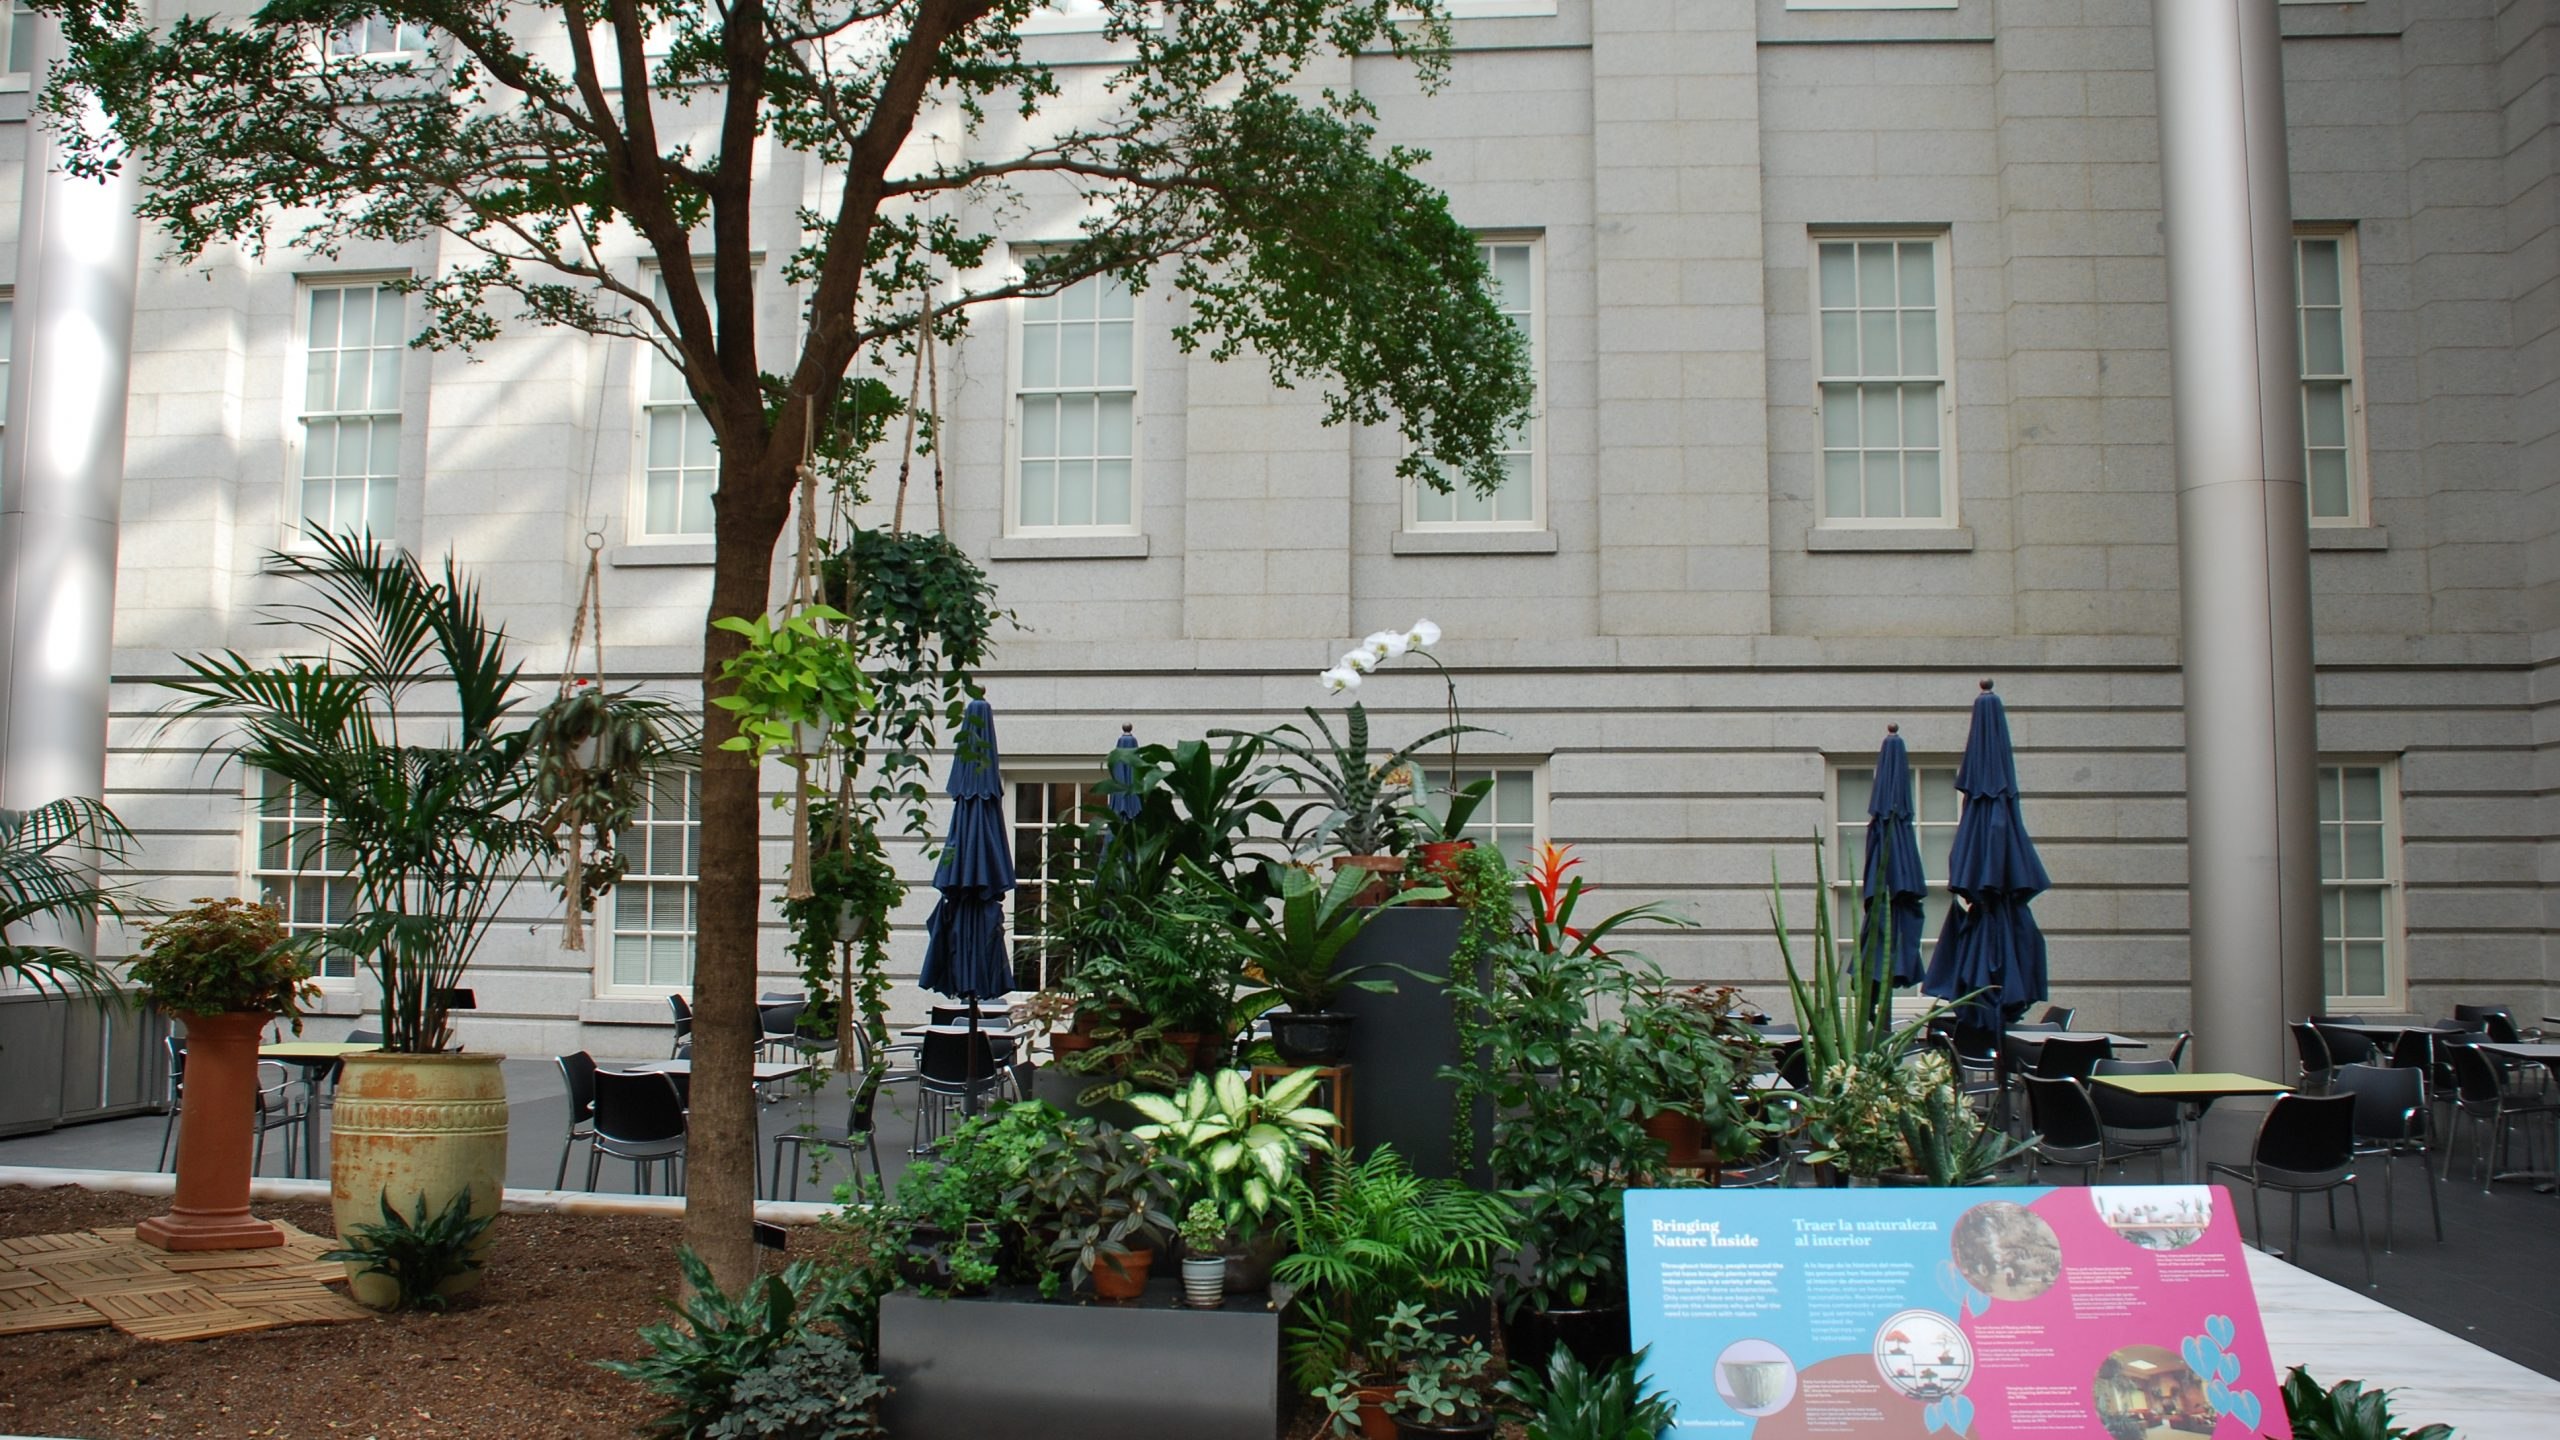 Habitat Exhibition: The Great Indoors at the Robert and Arlene Kogod Courtyard